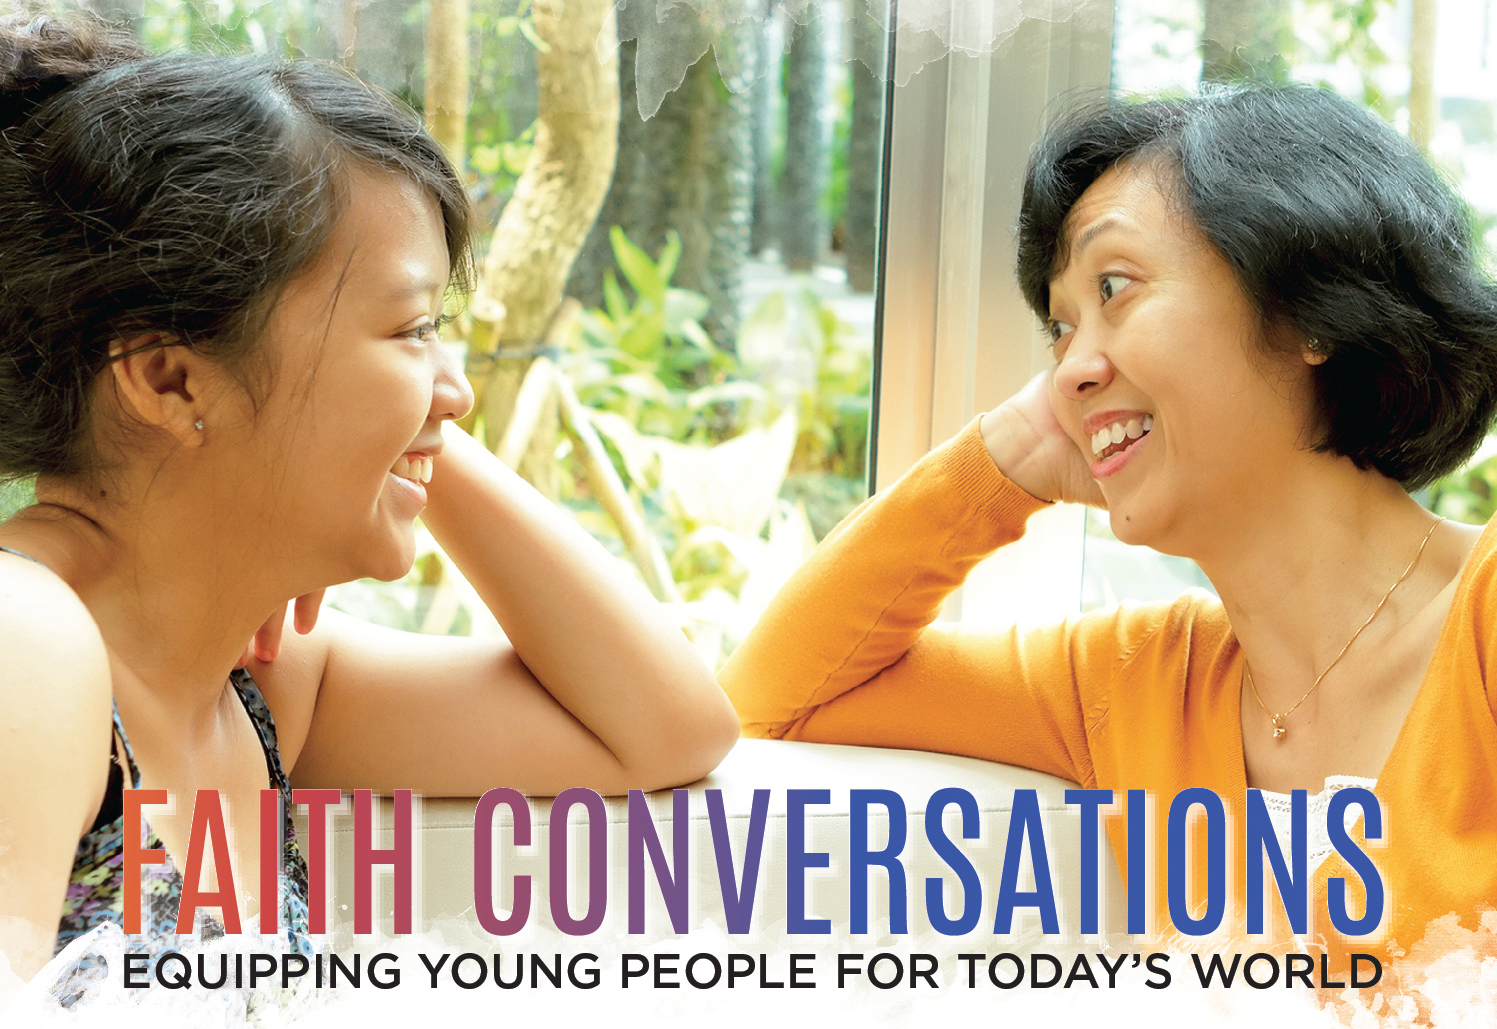 Faith Conversations: Equipping Young People for Today's World